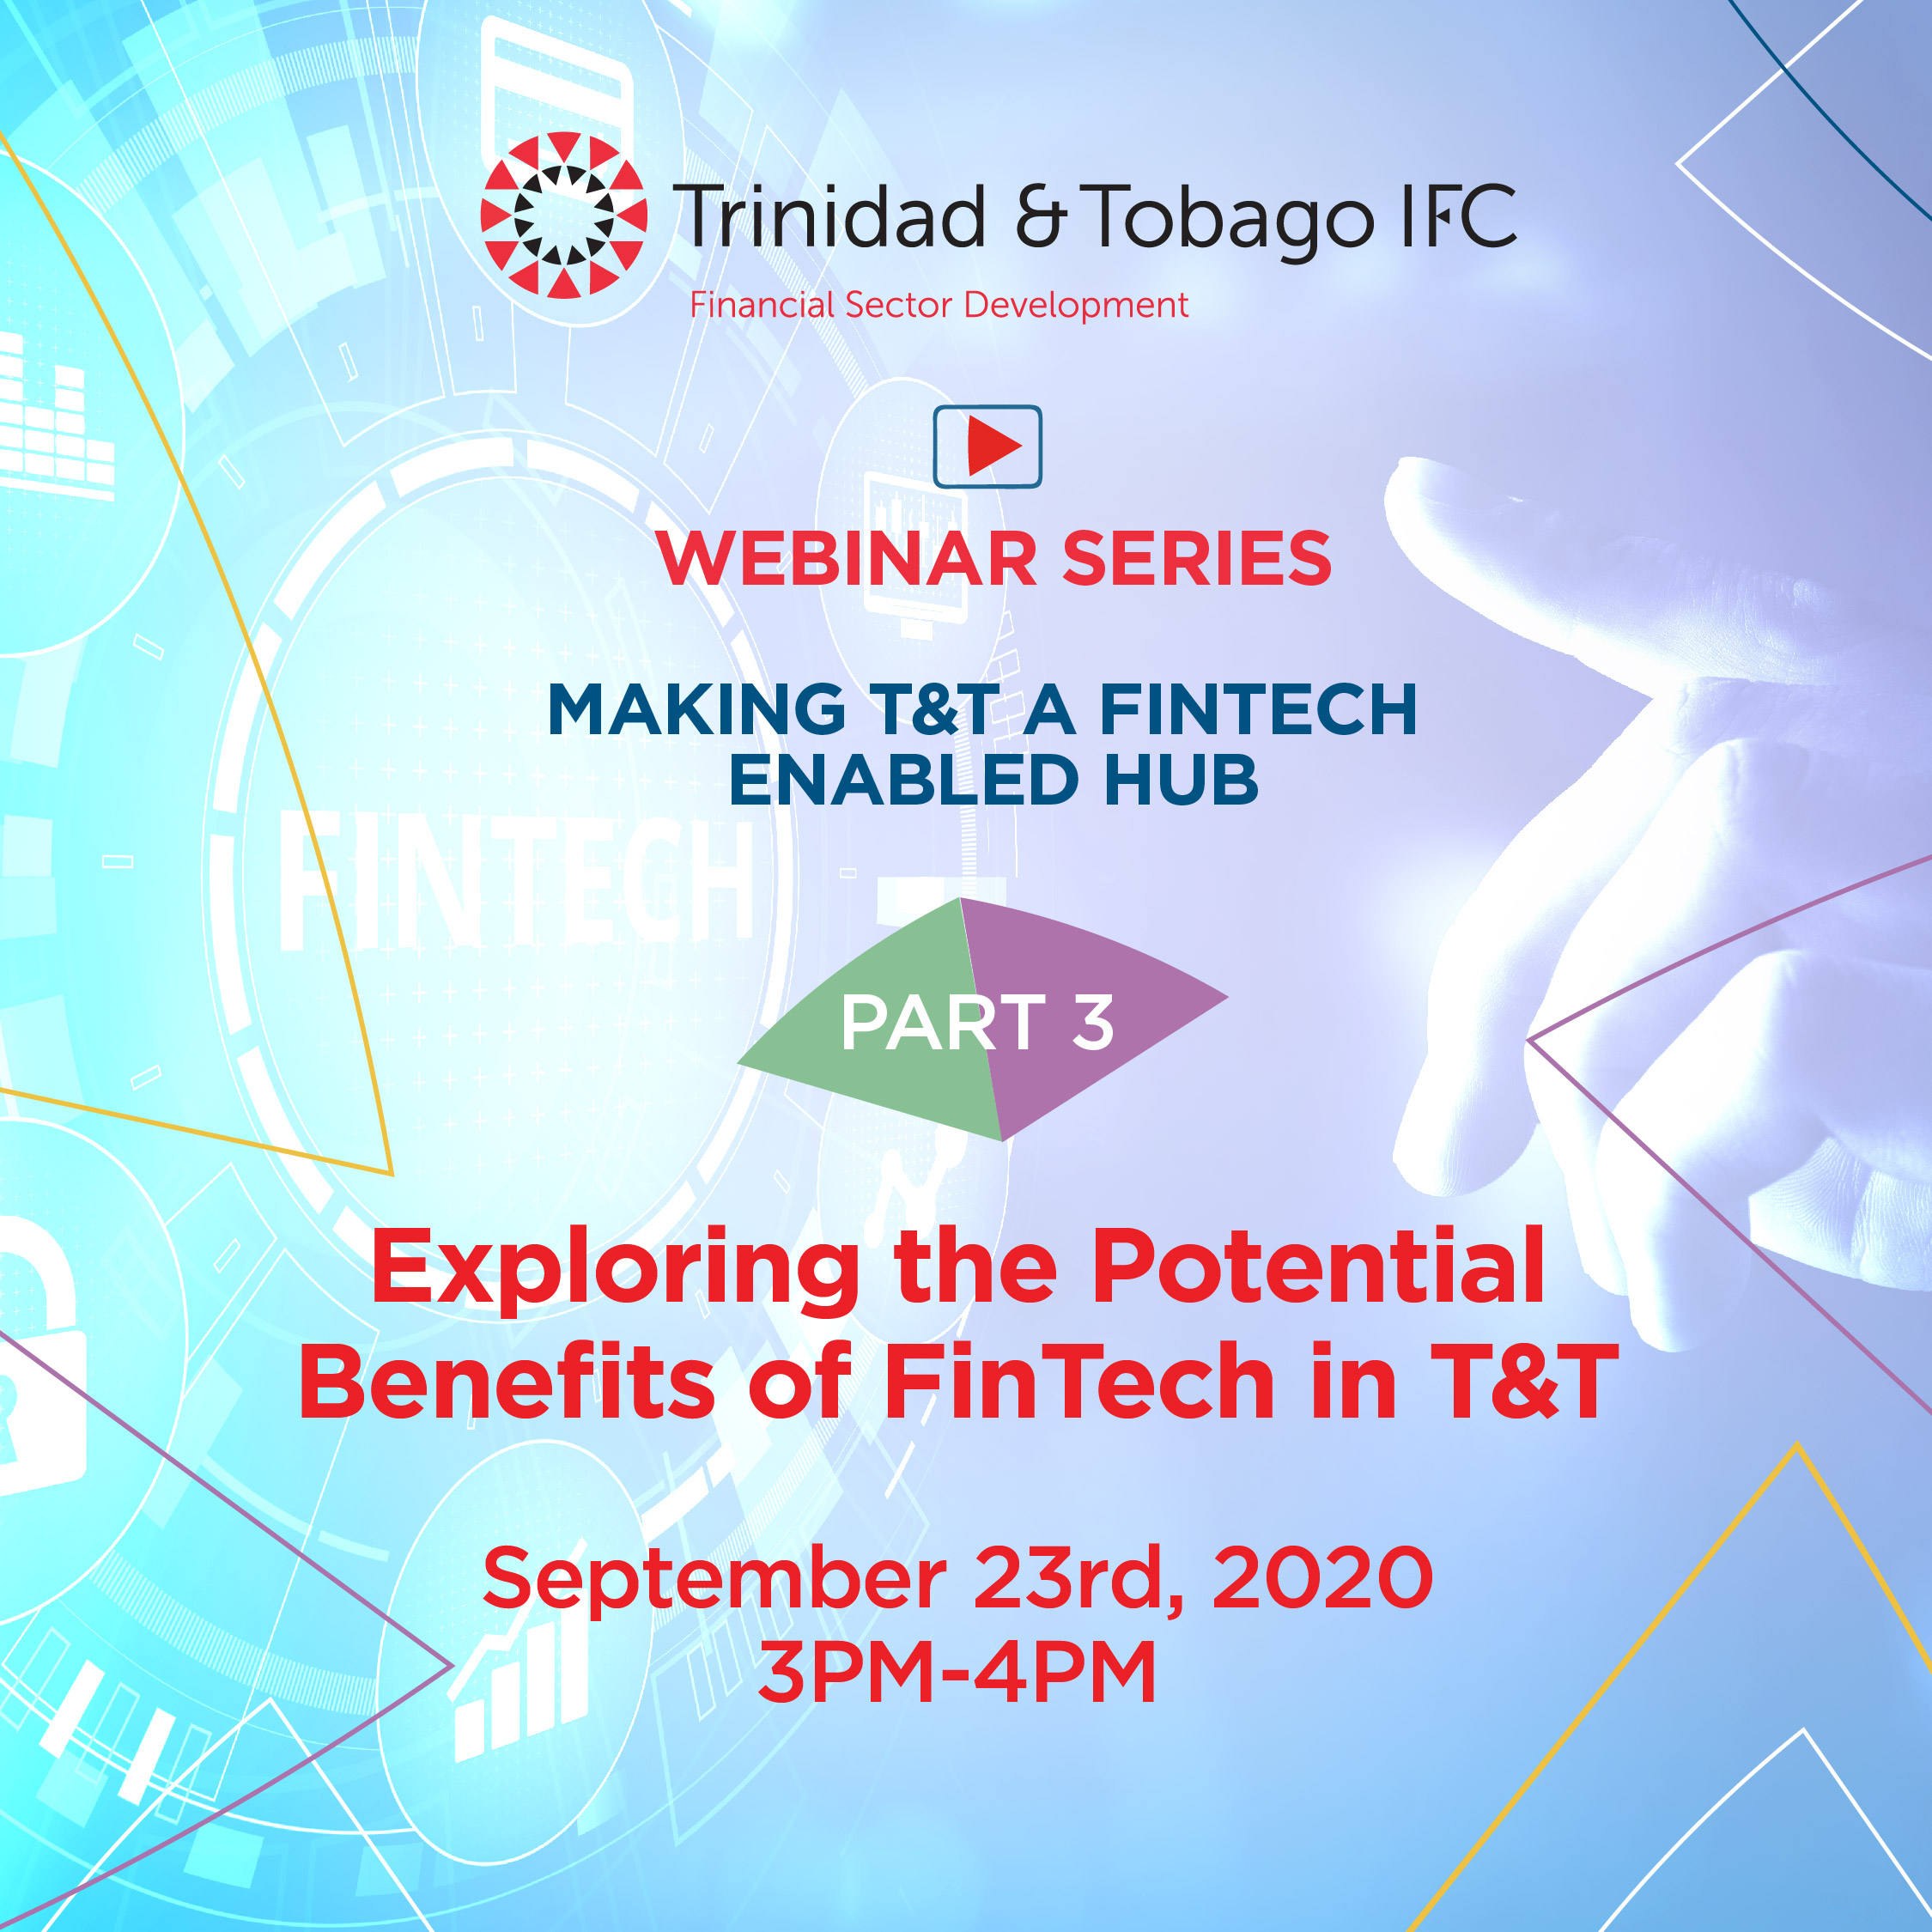 Exploring the Potential Benefits of FinTech in T&T - Part 3